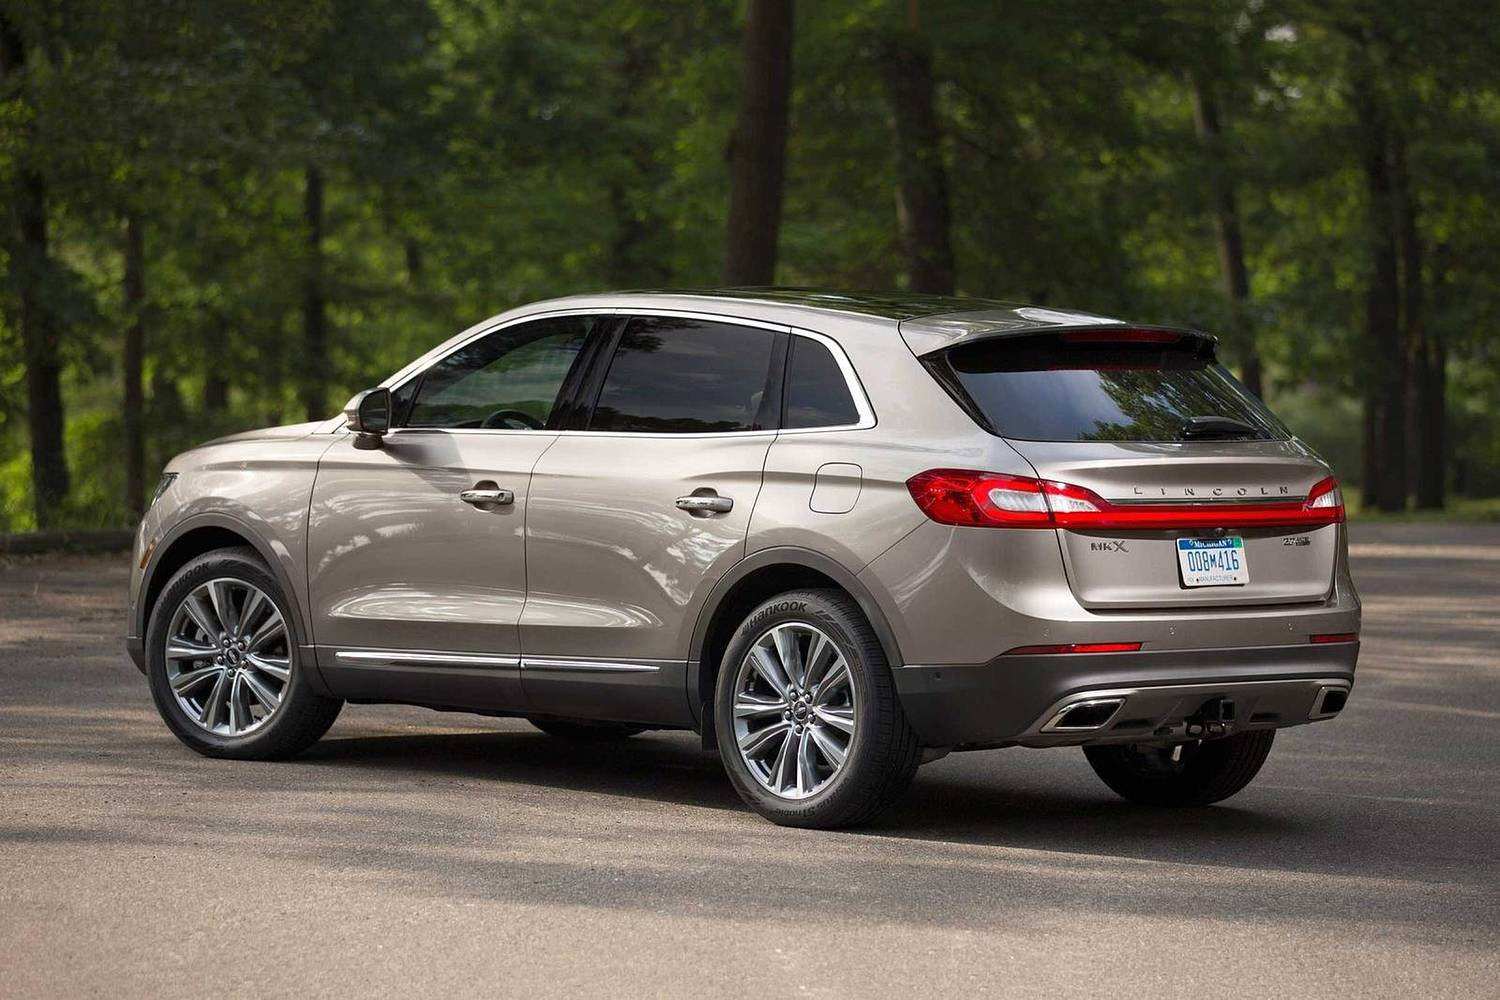 Lincoln MKX Reserve 4dr SUV Exterior (2017 model year shown)